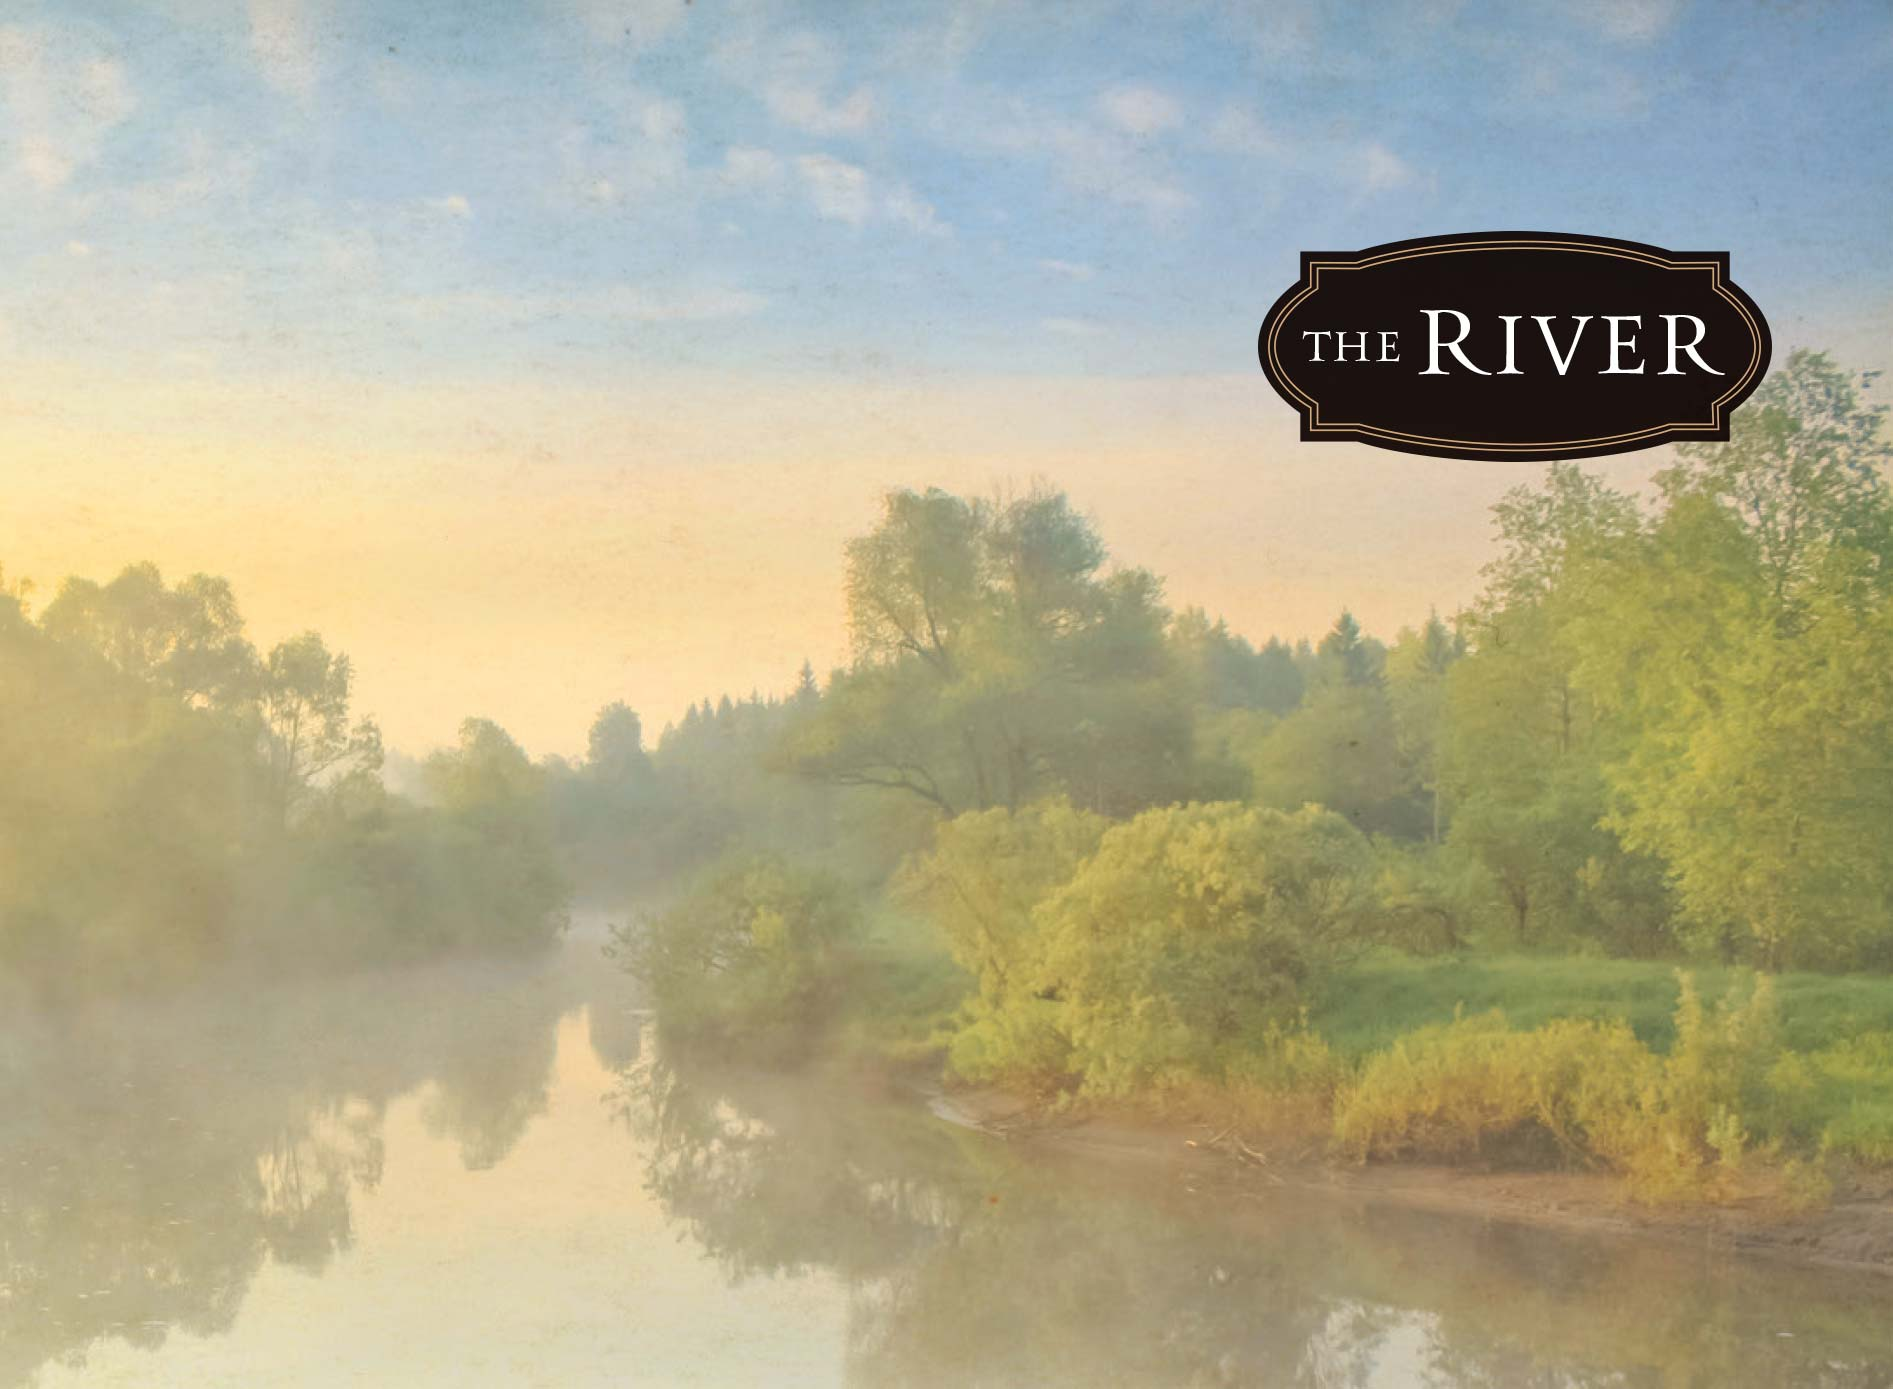 bannerTall_TheRiver_trailer